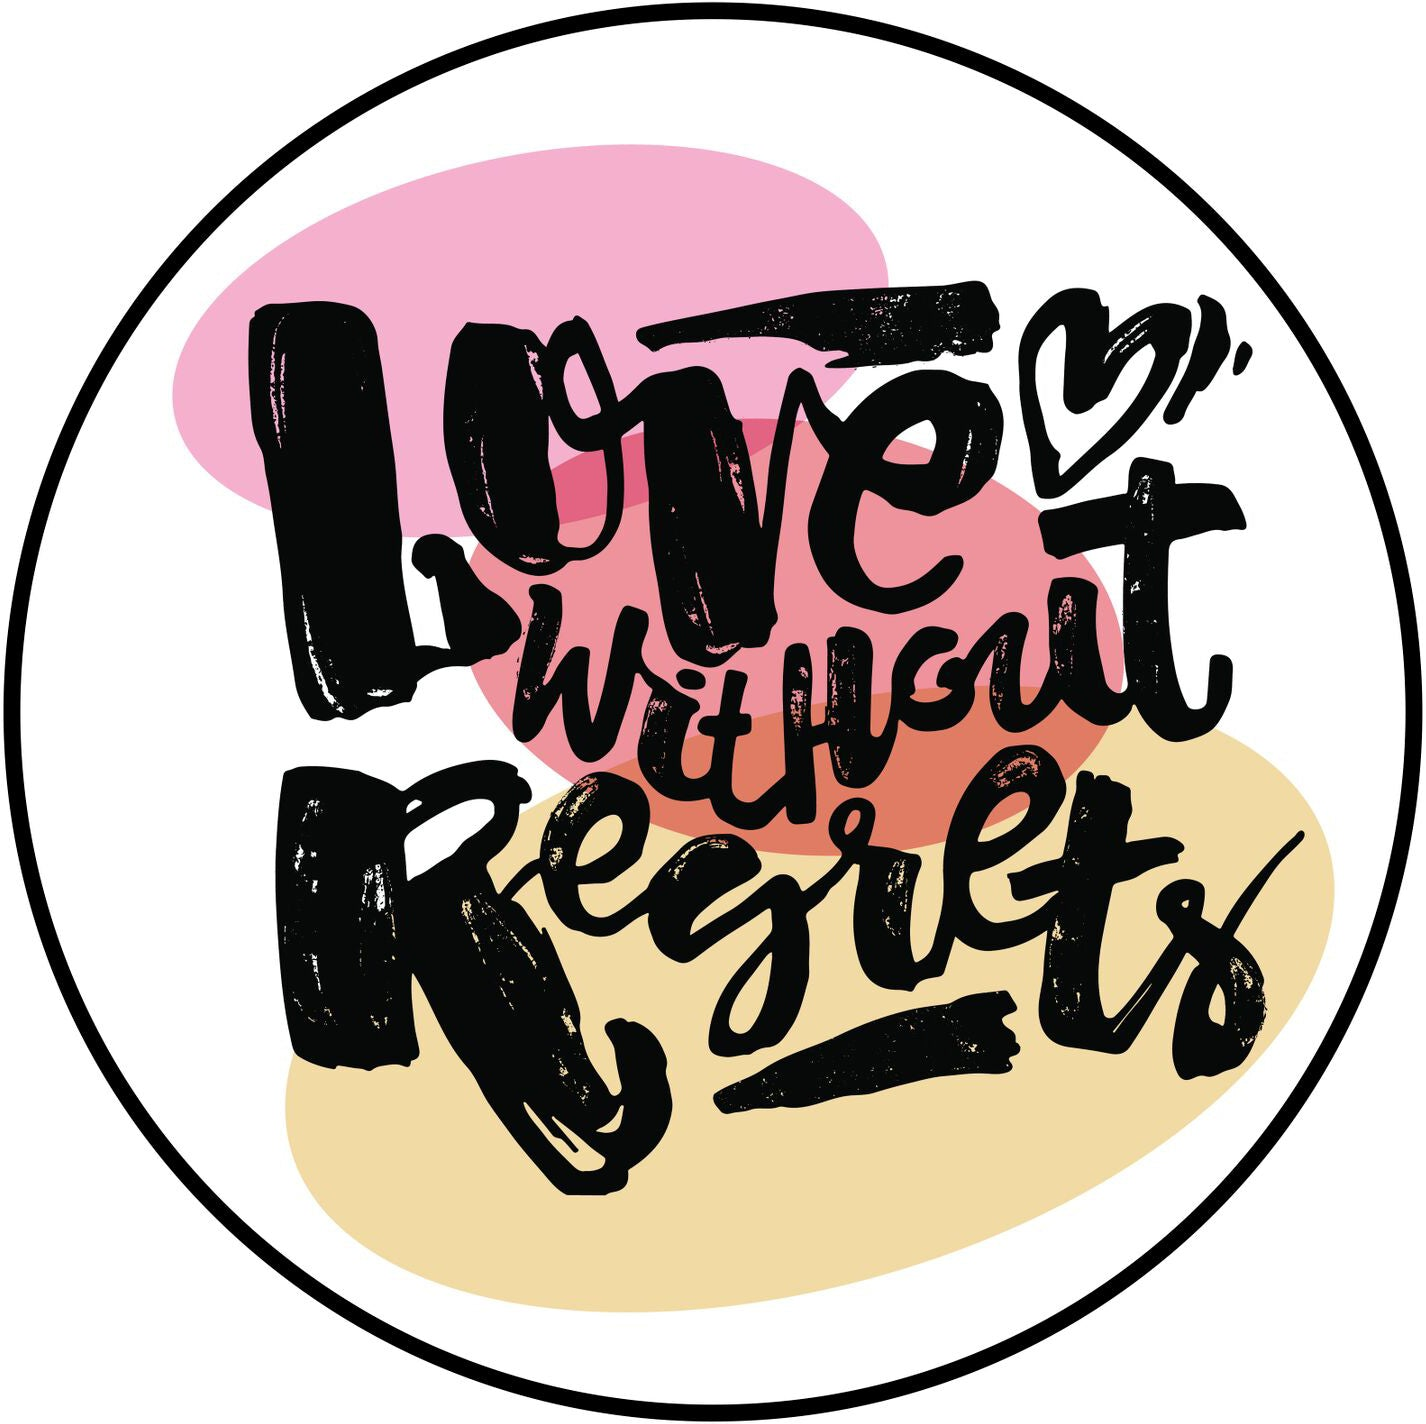 Love Without Regrets Sketch Calligraphy Icon Border Around Image As Shown Vinyl Sticker